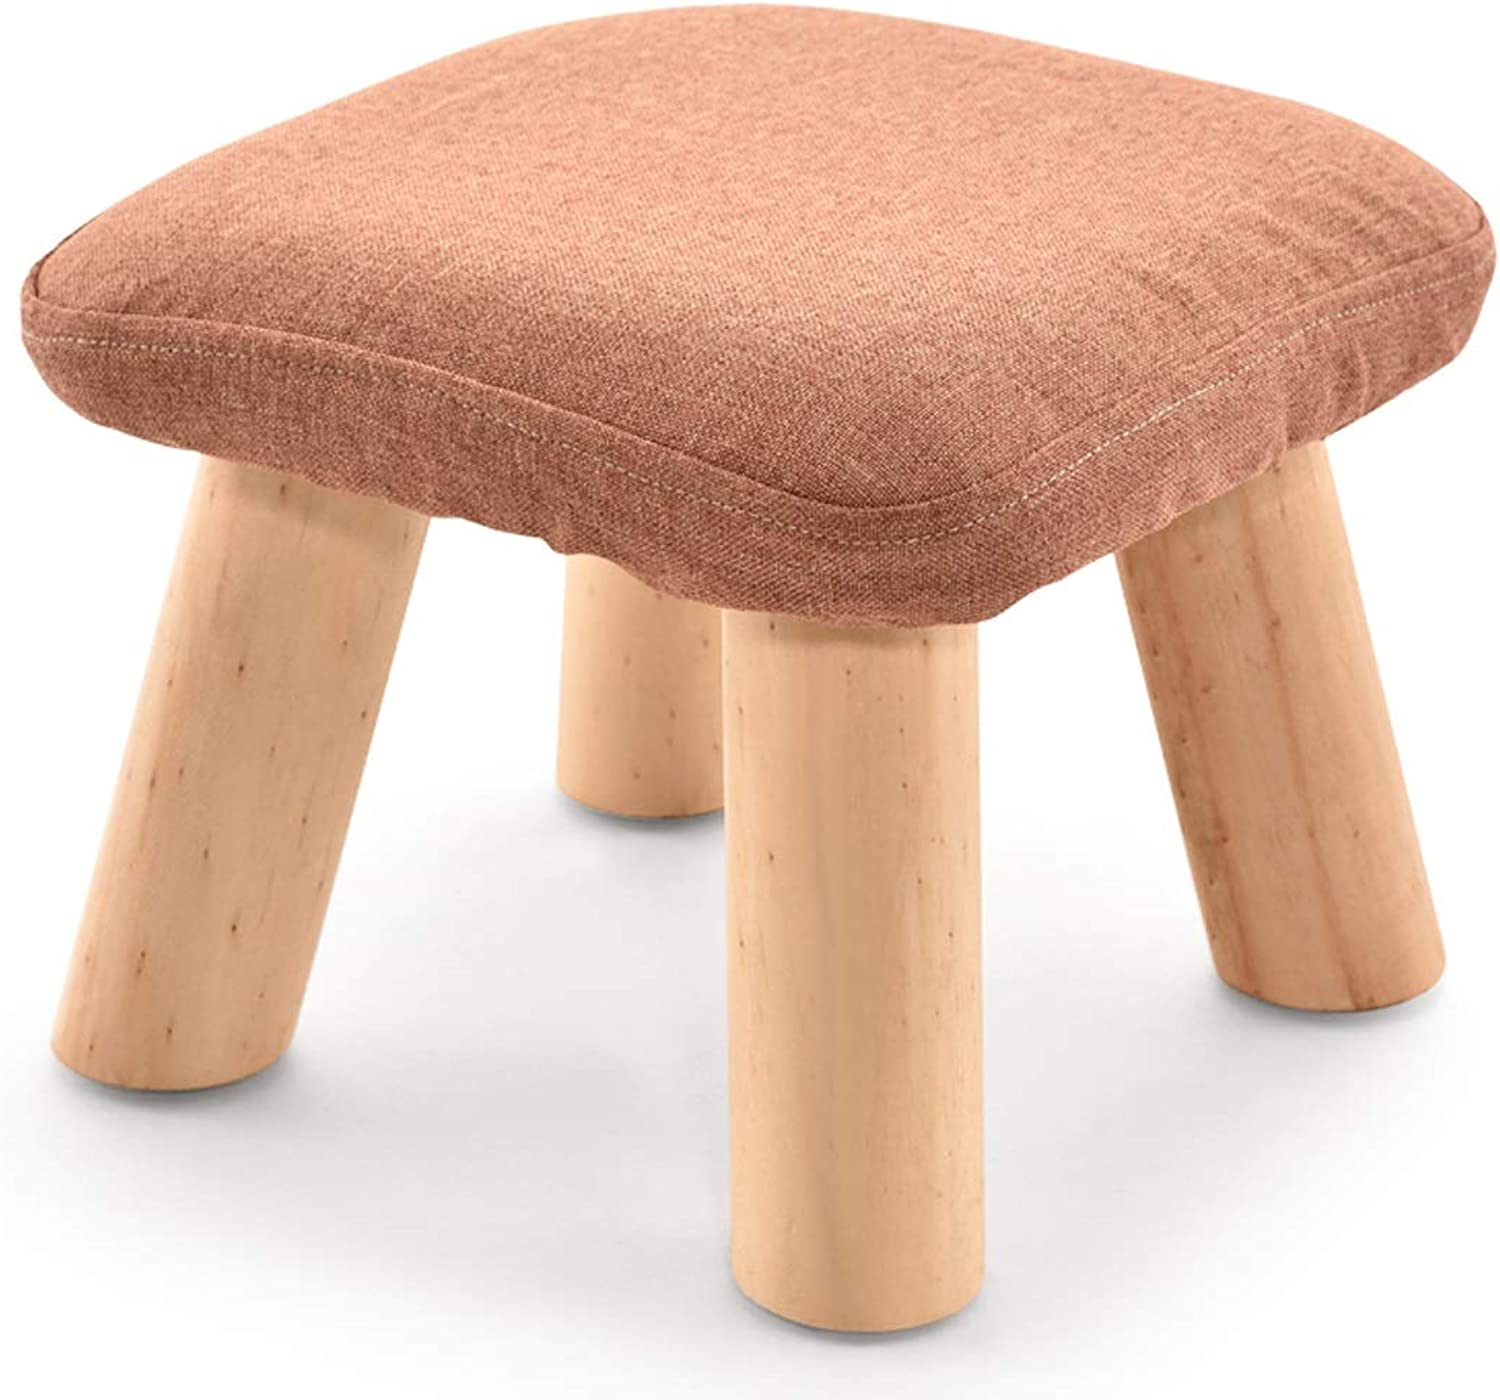 LRW Small Stools, Solid Wood Sofa Stools, Cloth Stools, Stools, Stools, Low Stools, Fashionable shoes, Changing shoes Stools, orange